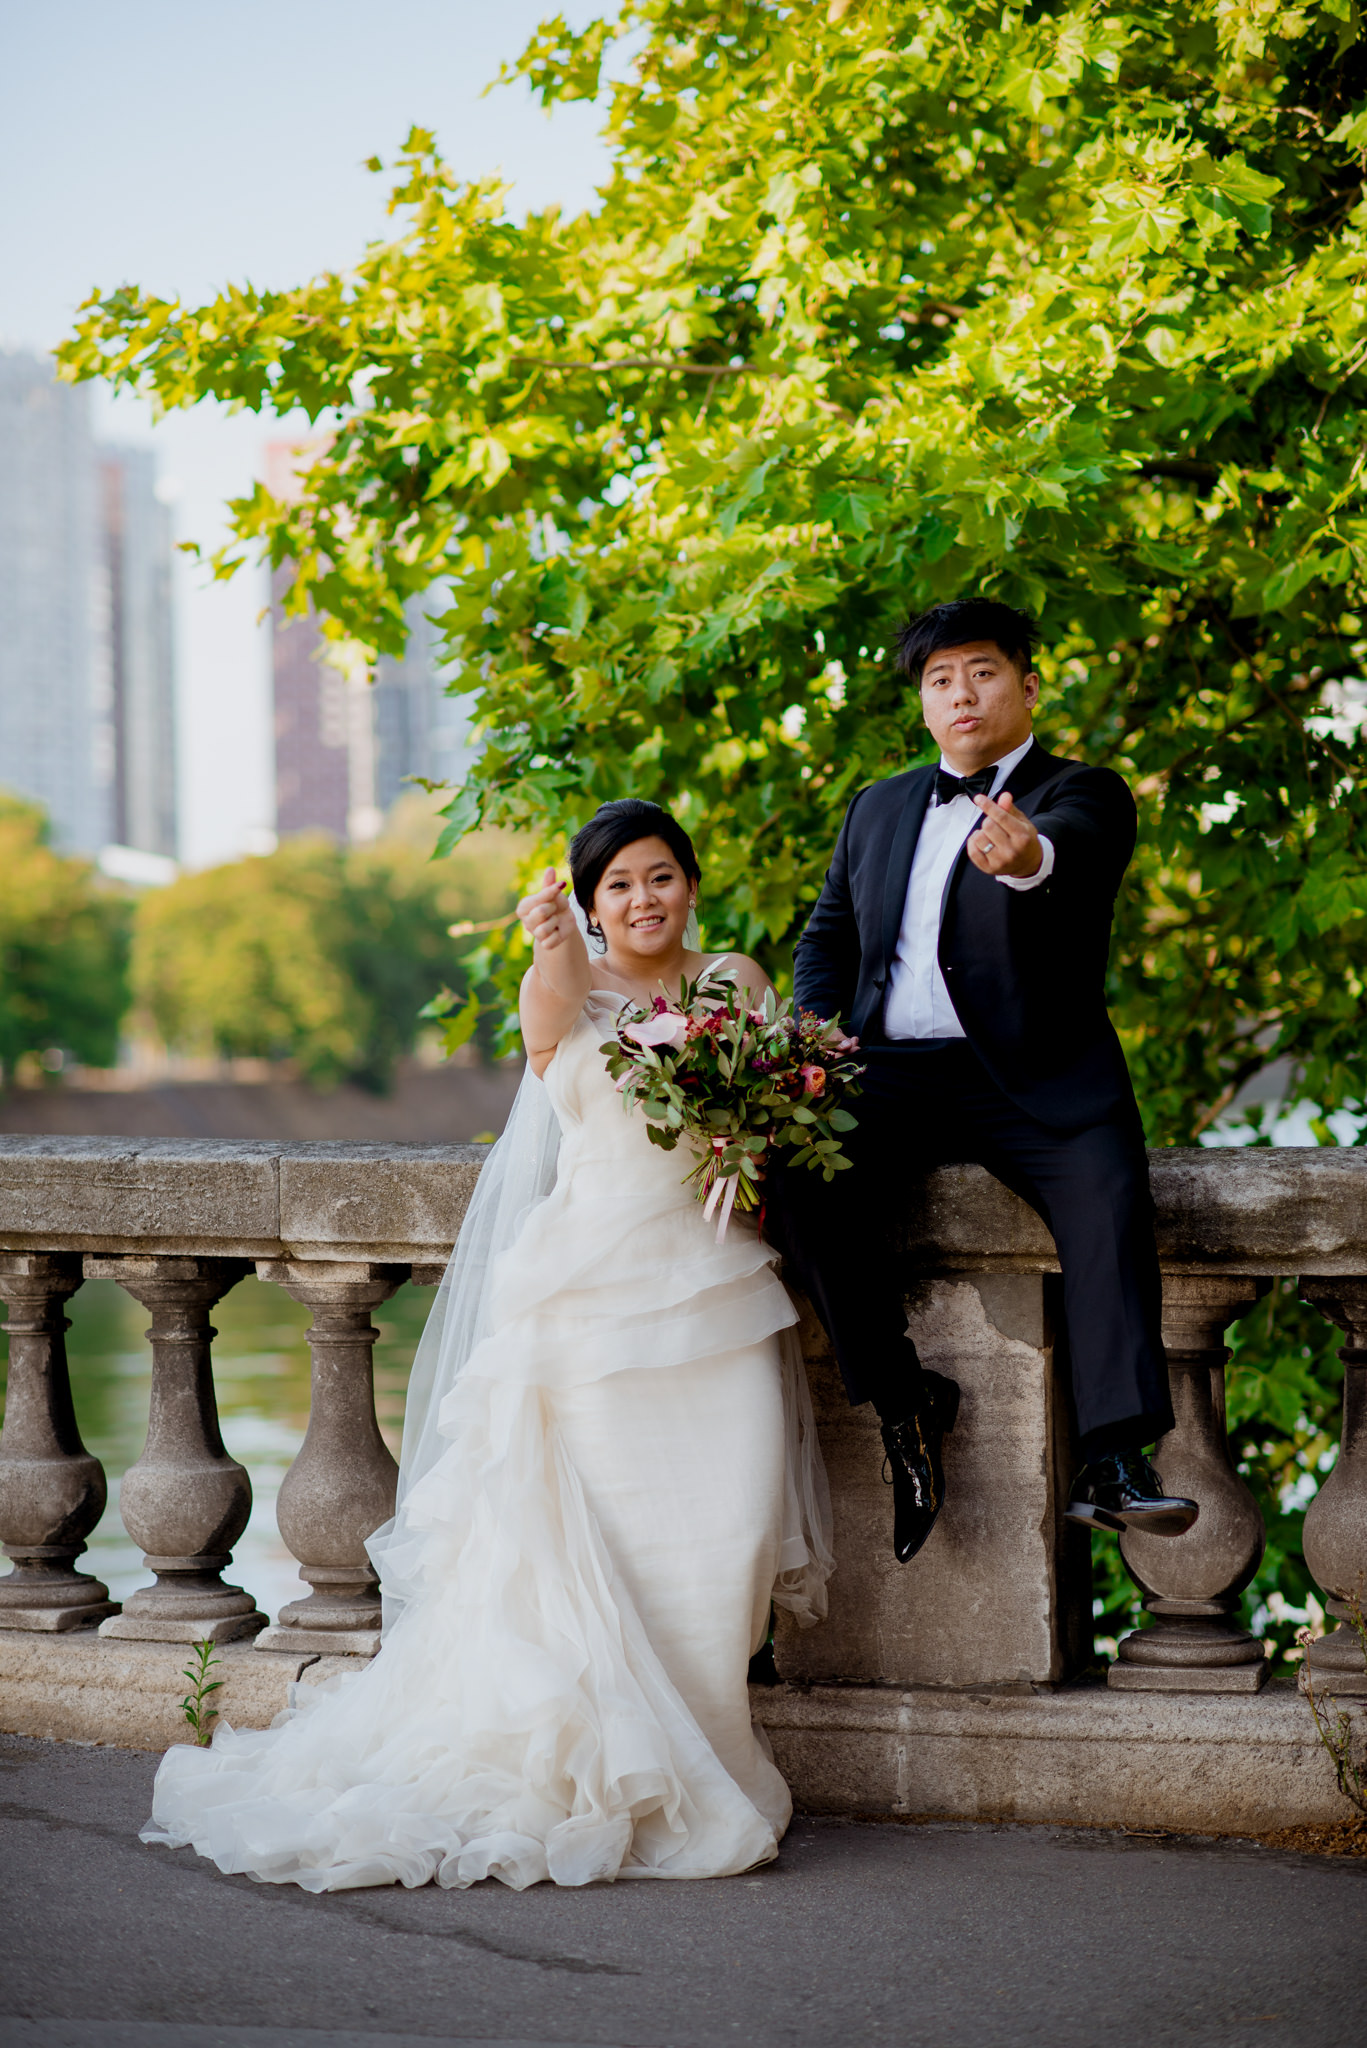 Asian bride and groom pose on bridge in Paris.